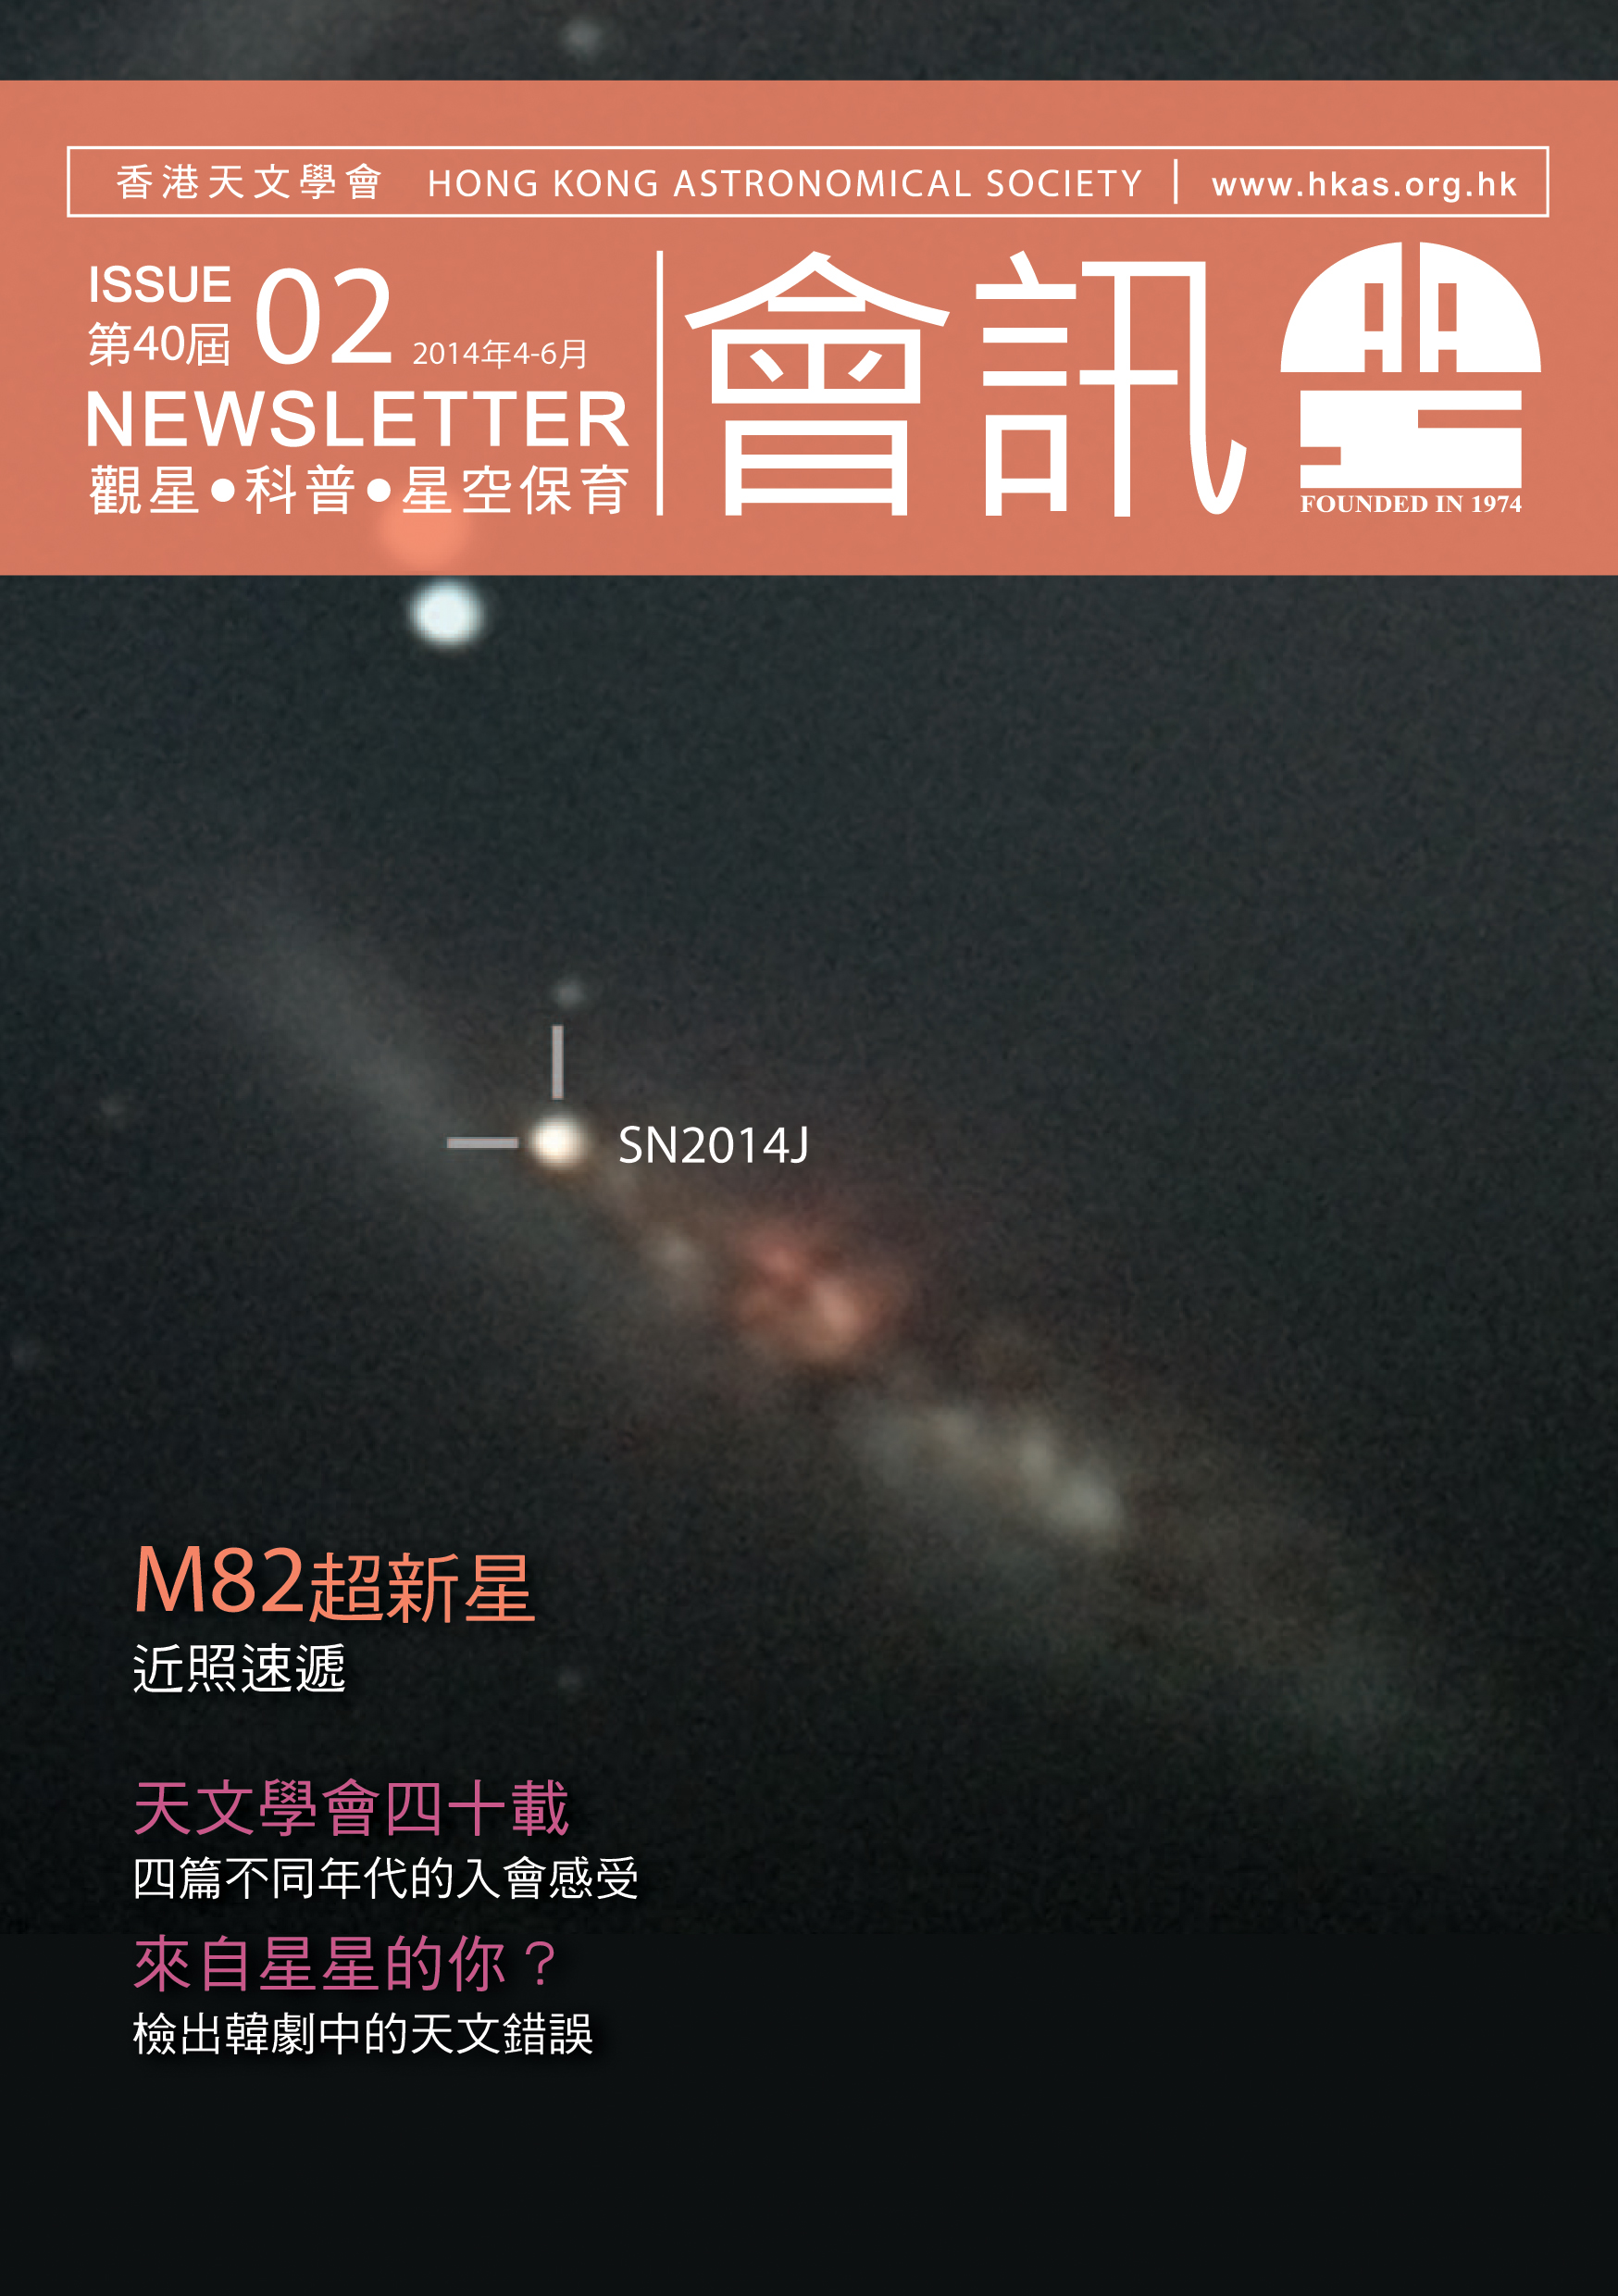 Hong Kong Astronomical Society Newsletter Issue 40, 01